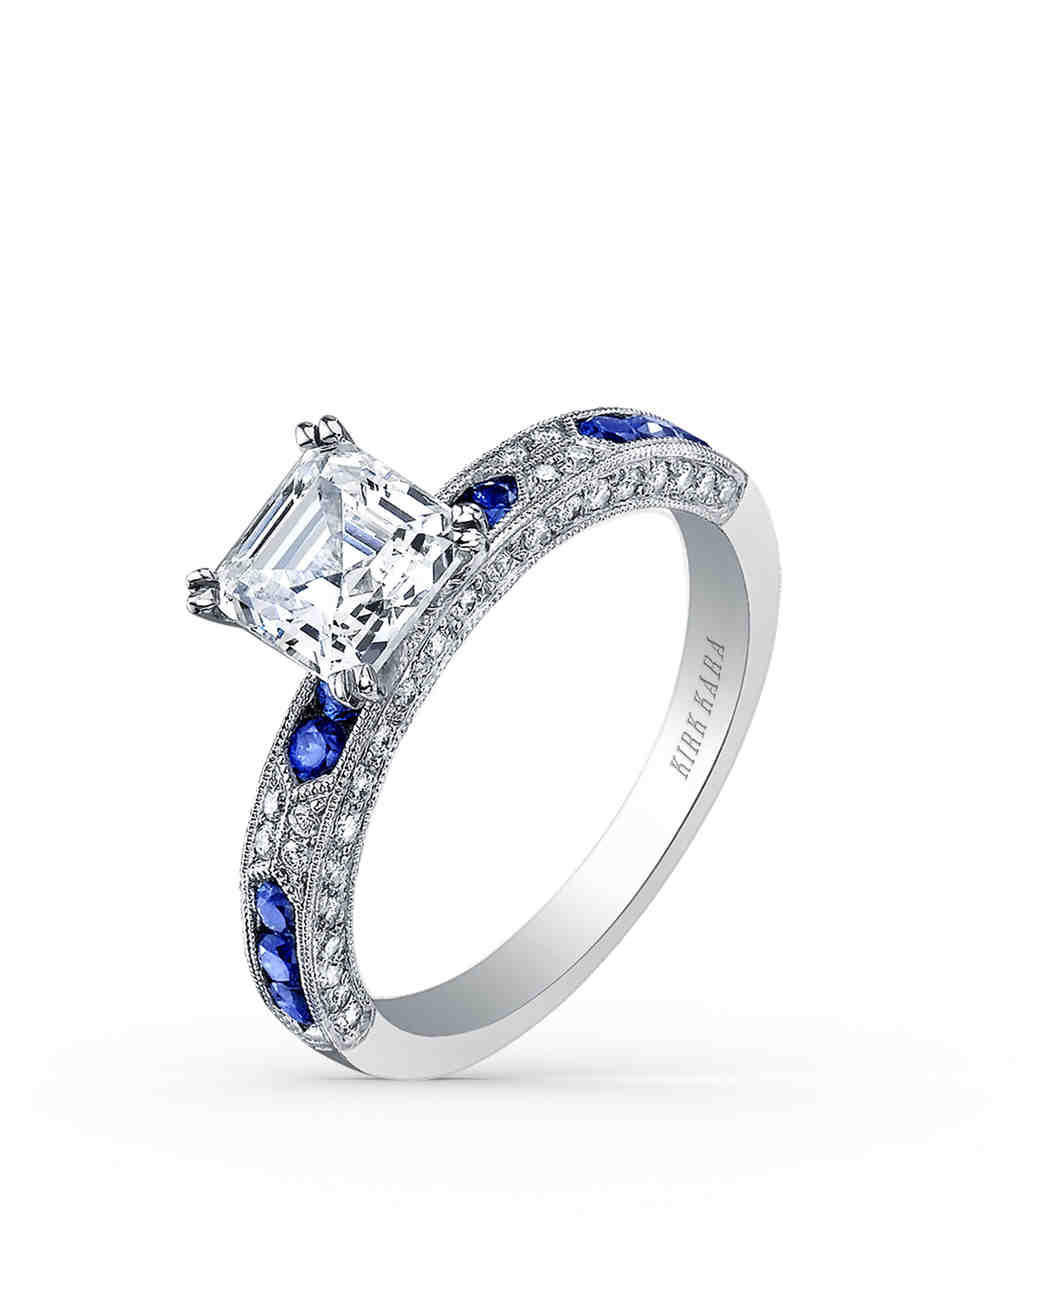 Kirk Kara Asscher-Cut Diamond Engagement Ring with Sapphires on Band